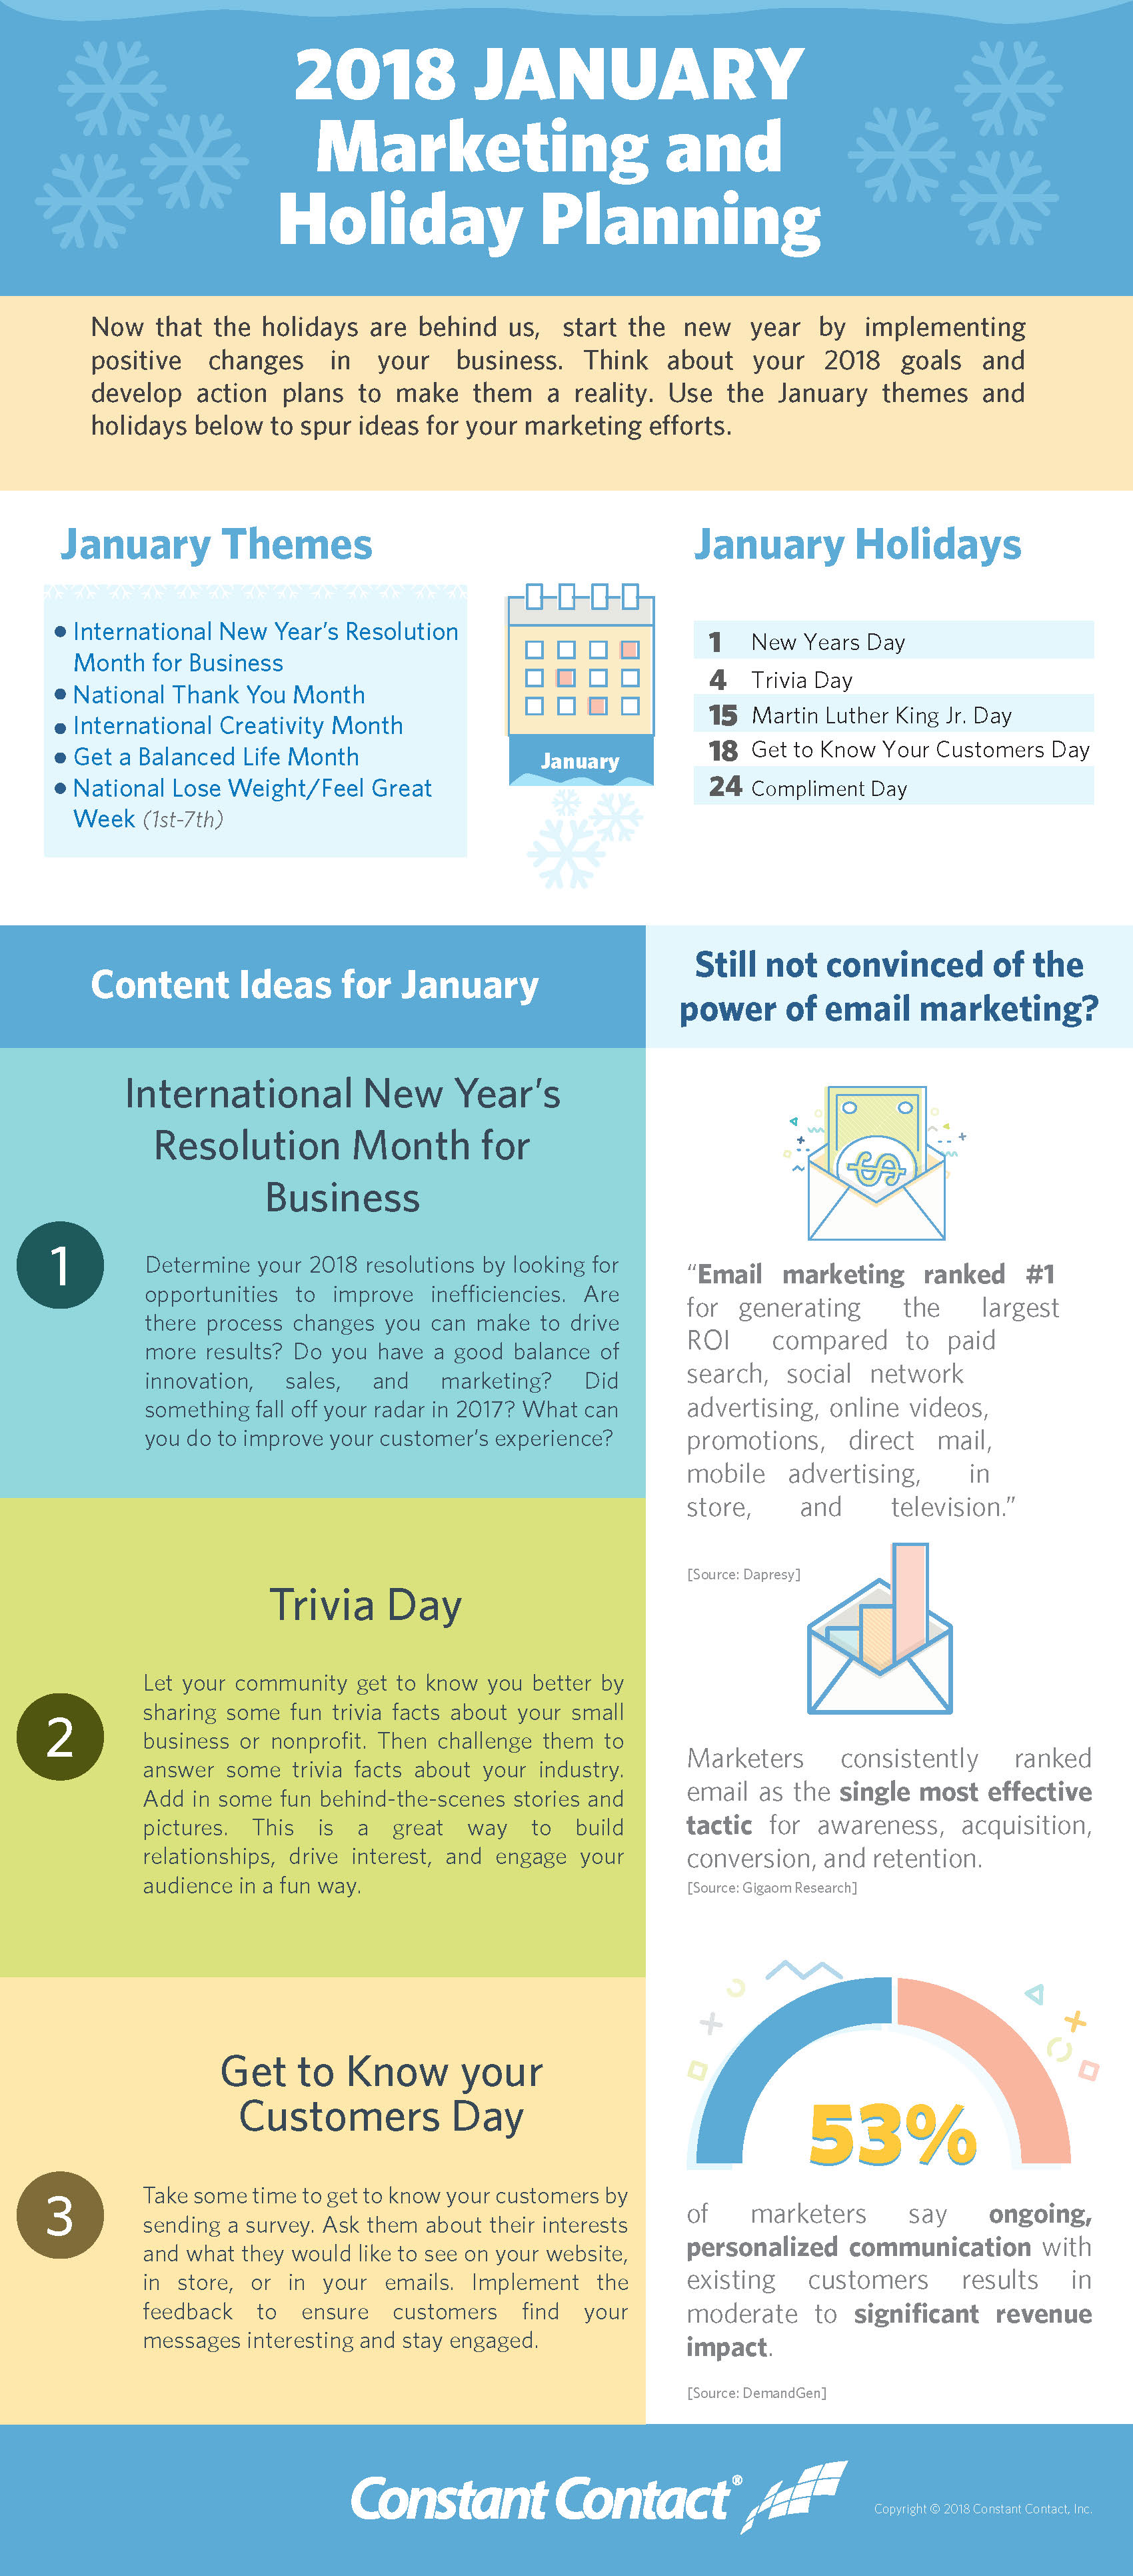 January 2018 Marketing and Holiday Planning | Constant Contact Blogs